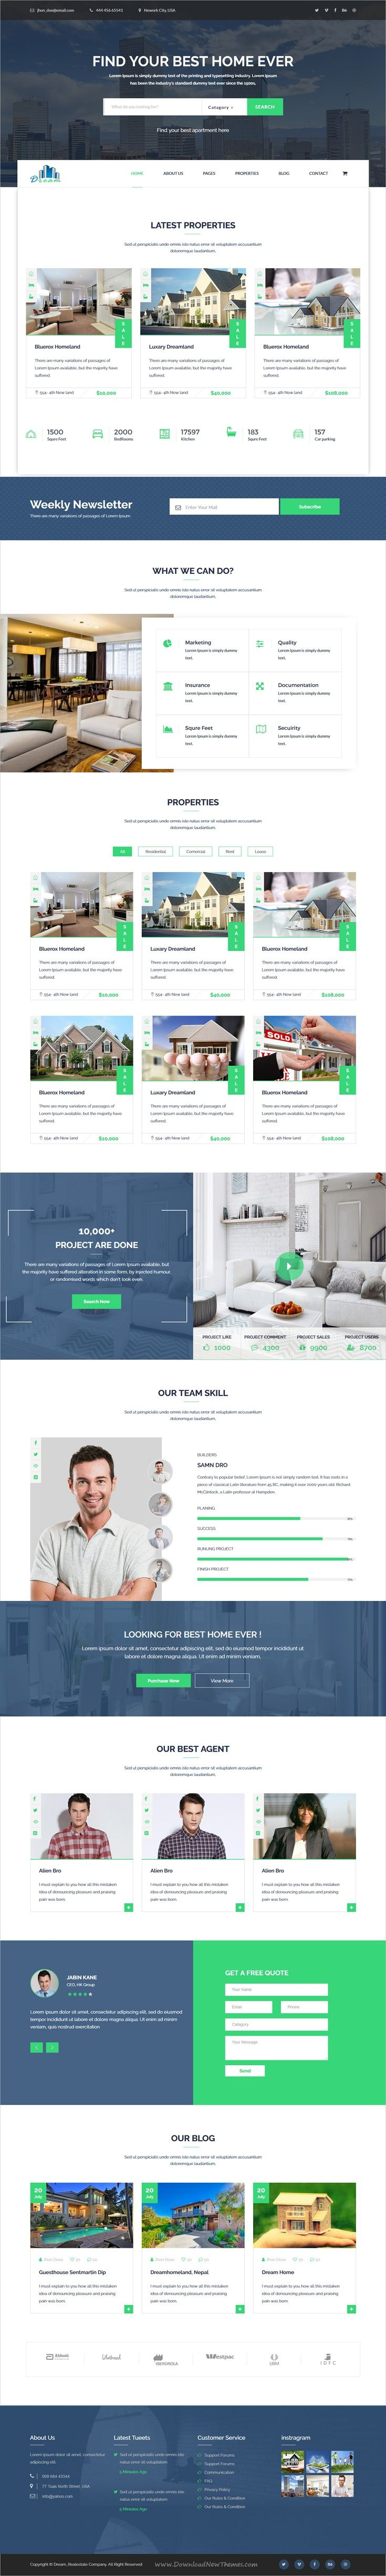 Dream is a clean and minimal design 2in1 responsive HTML #bootstrap template for single #property or real estate agencies website download now➩ https://themeforest.net/item/dream-single-property-real-estate-html-template/19599932?ref=Datasata